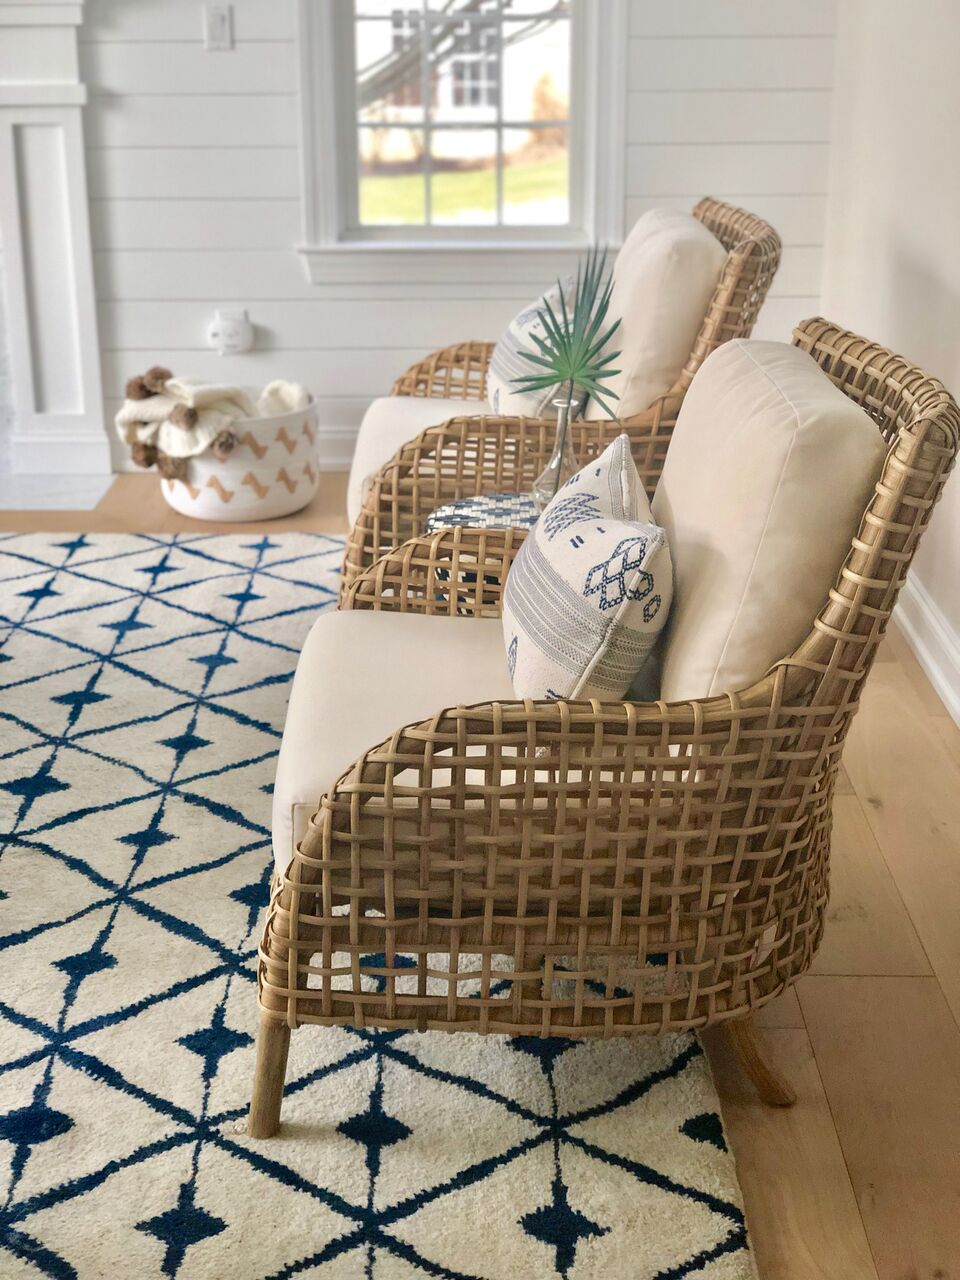 stephanie-kraus-designs-mainline-pa-family-room-rattan-chairs.jpg